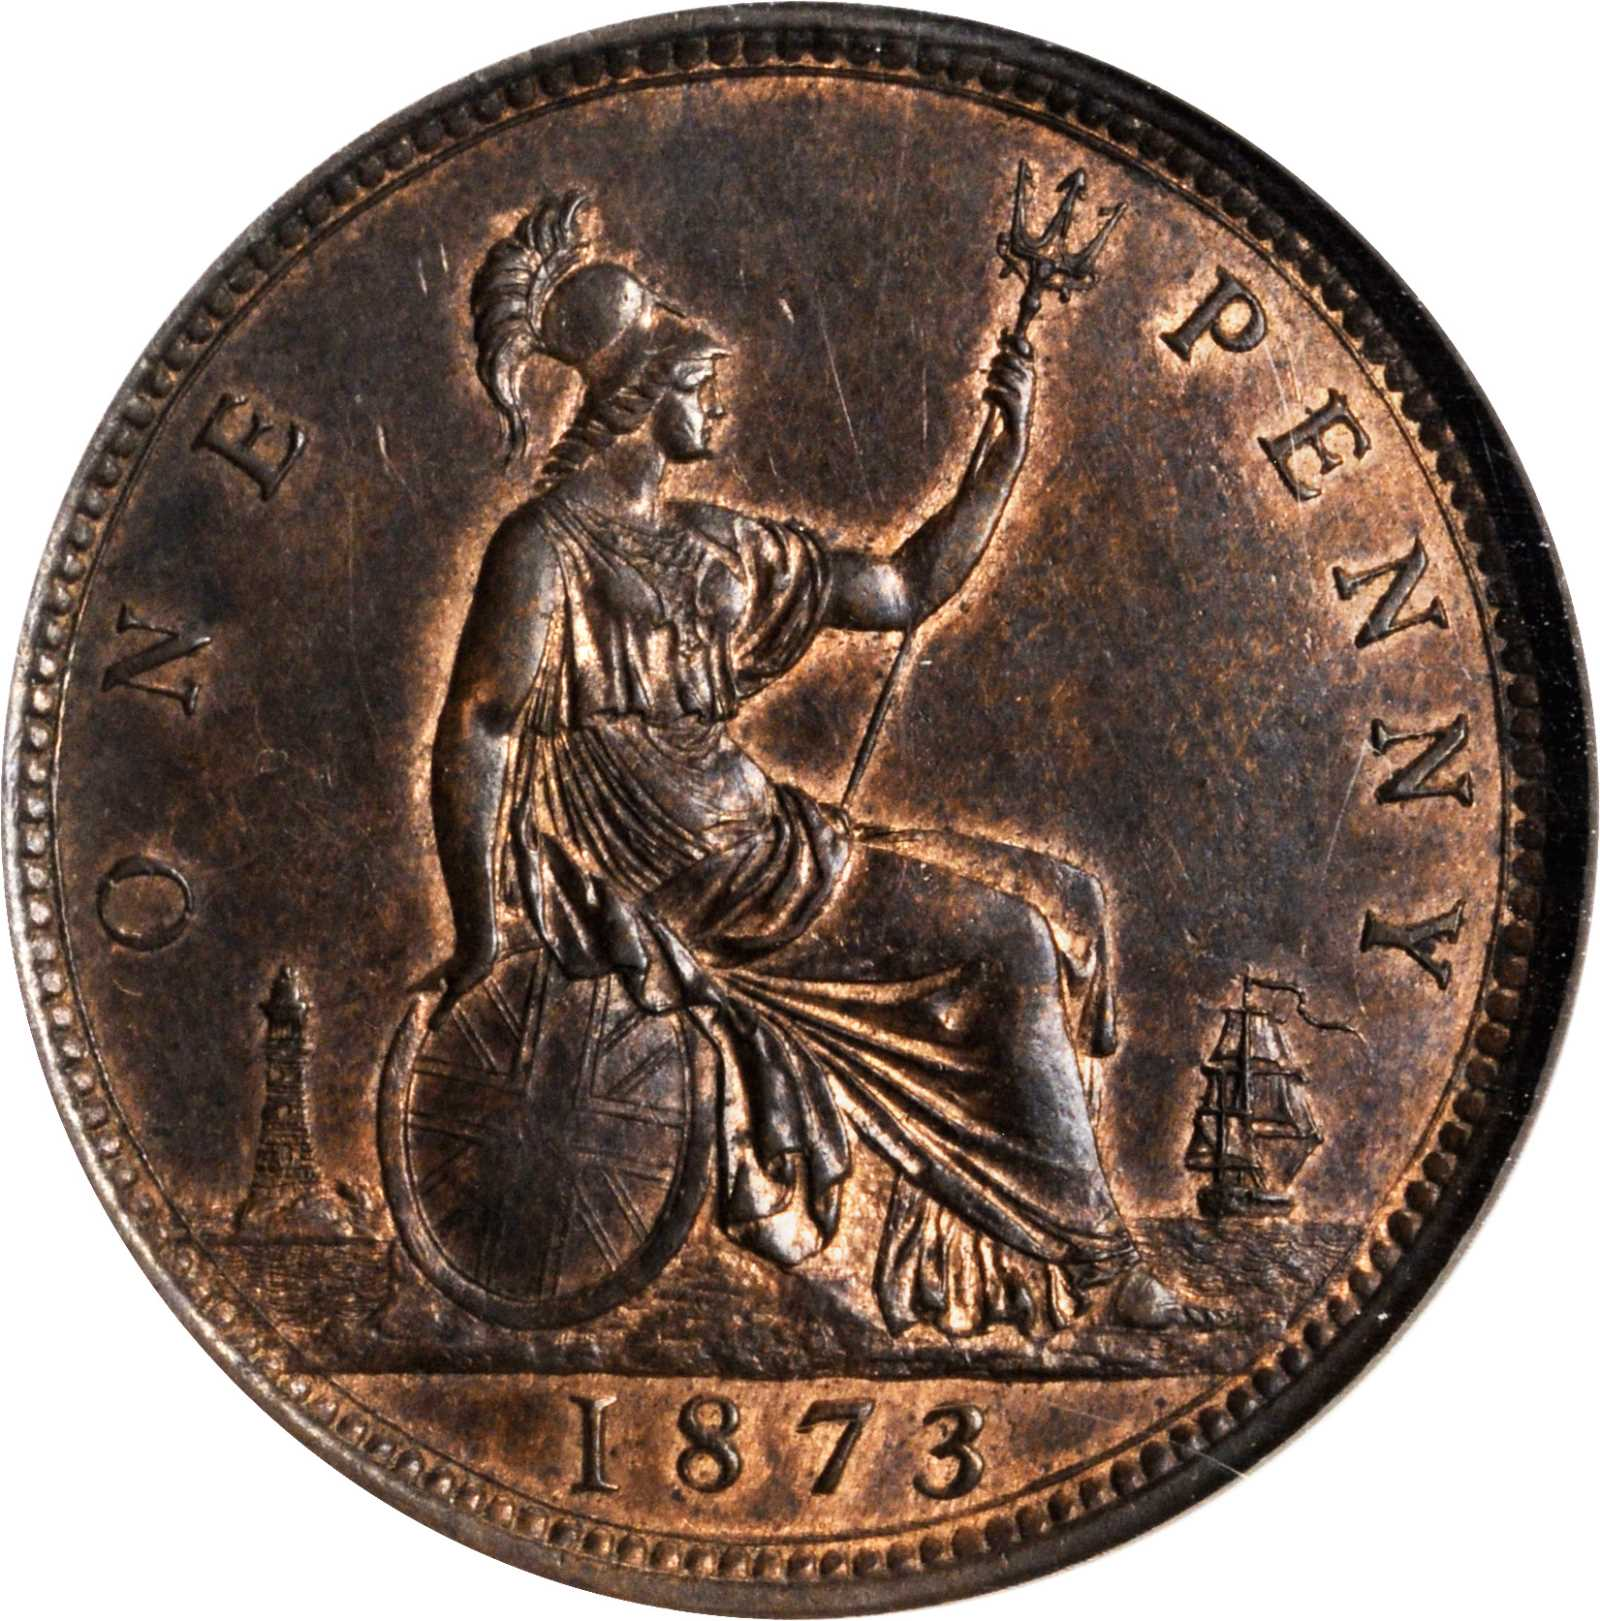 Penny 1873: Photo Great Britain 1873 penny